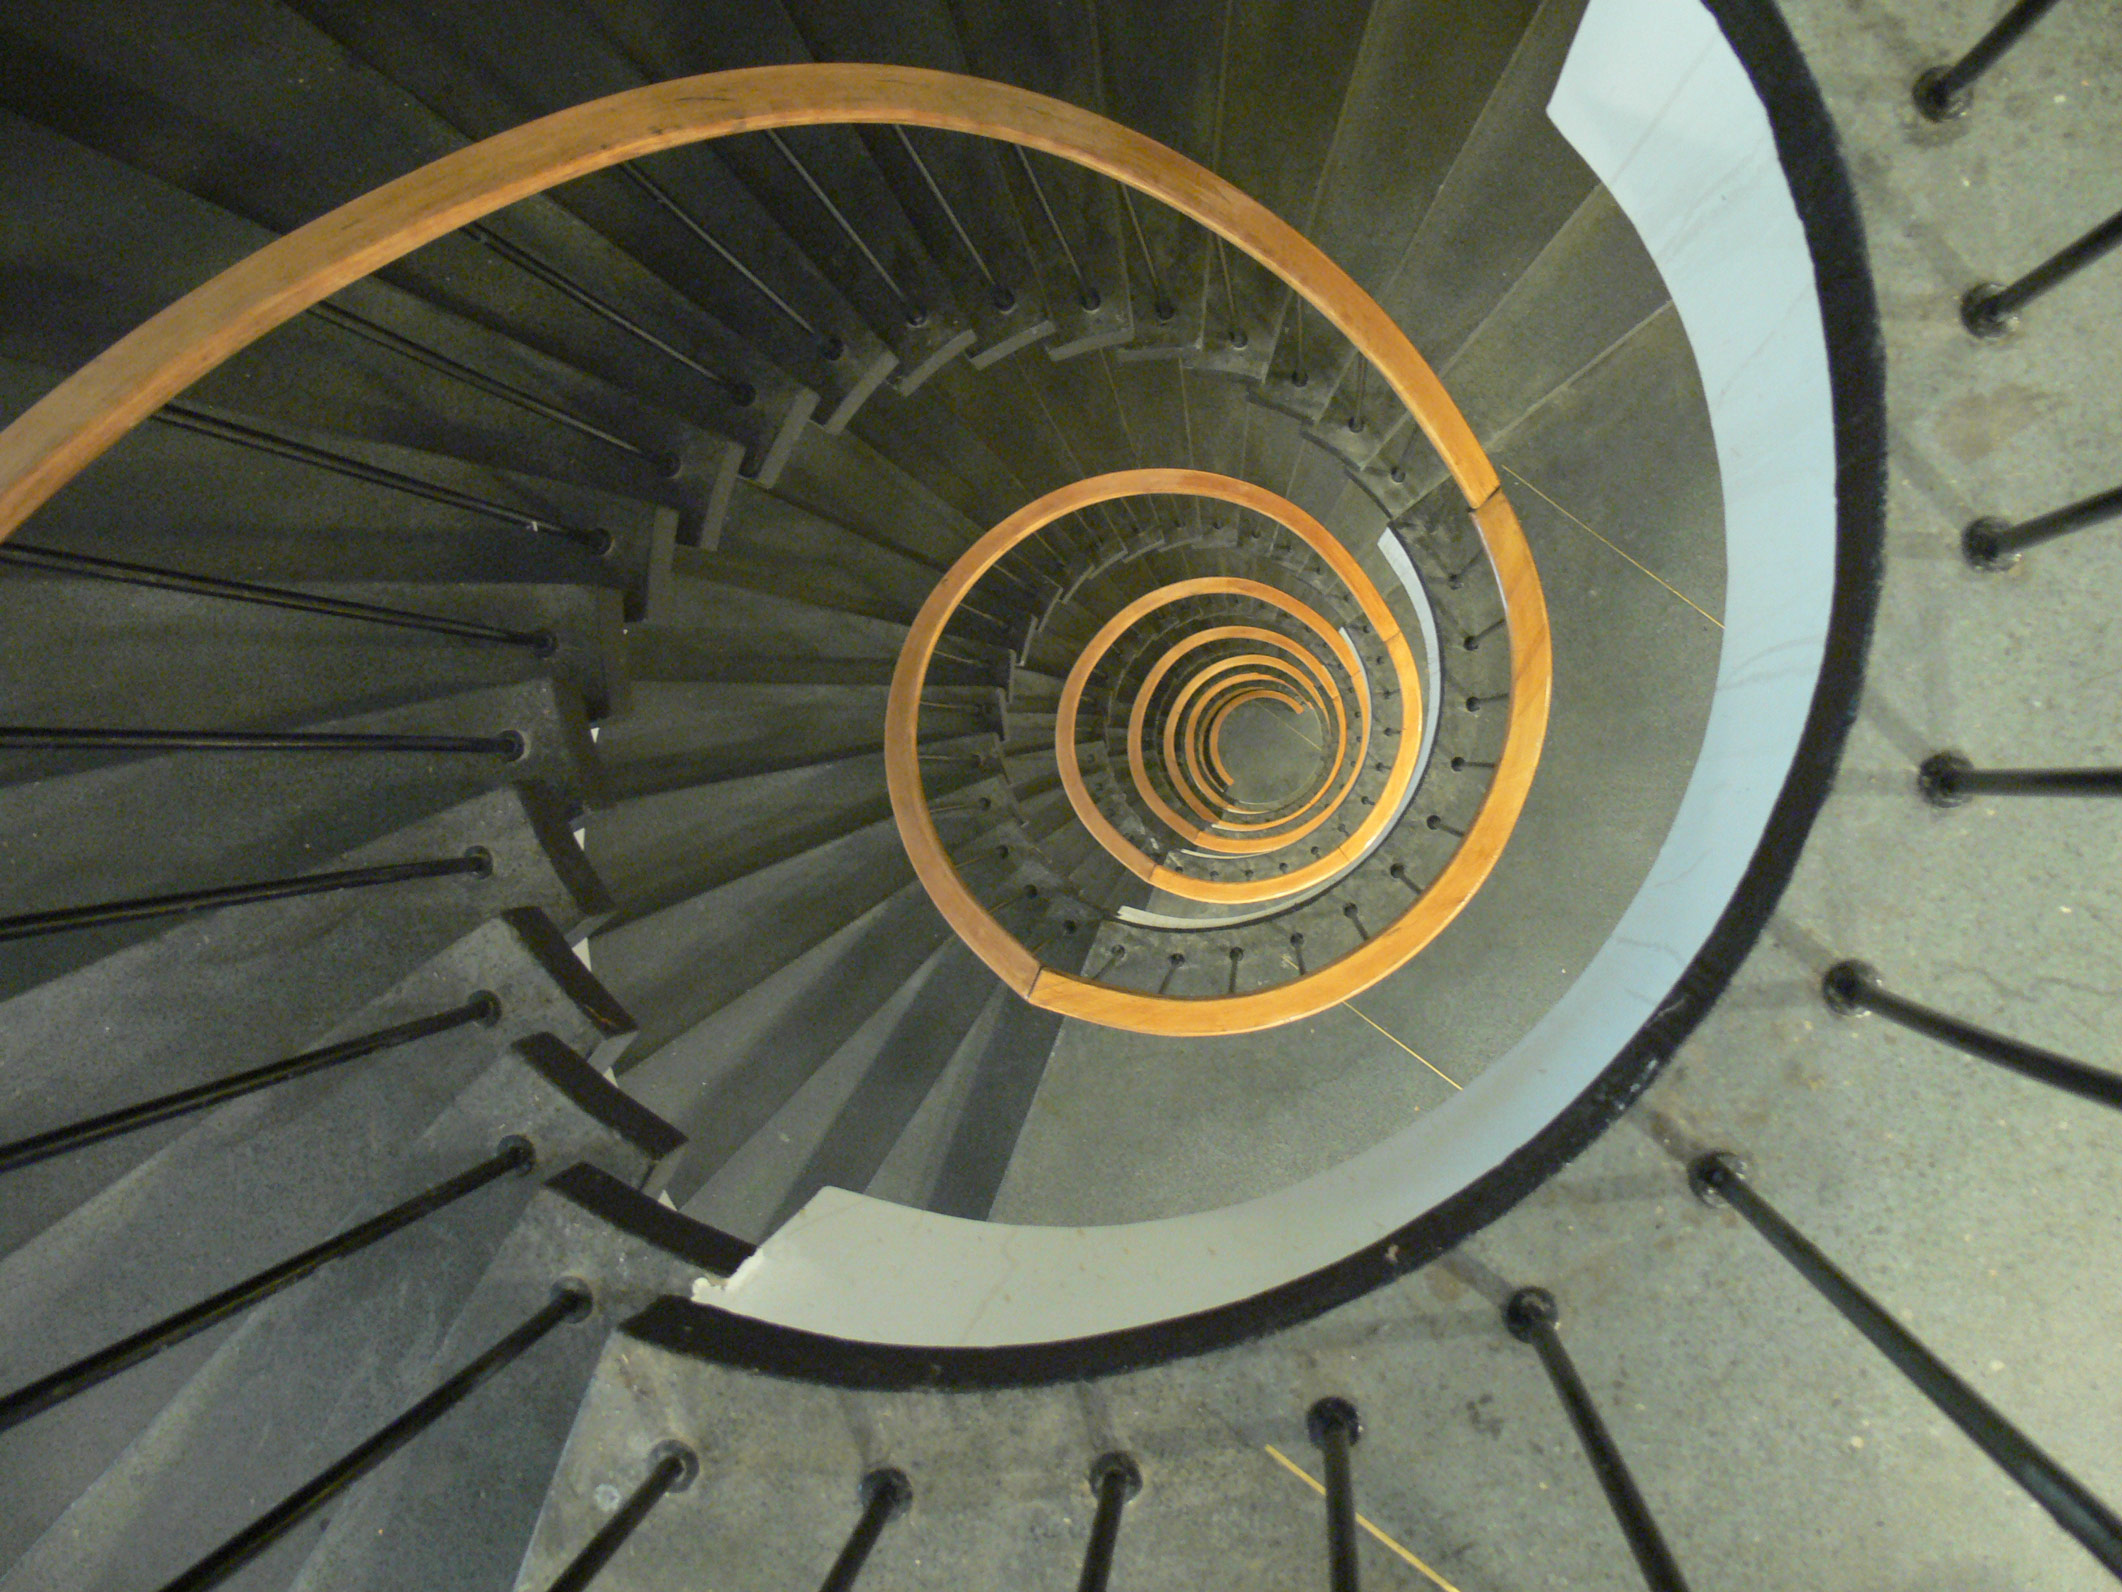 golden ratio, spiral, stairs